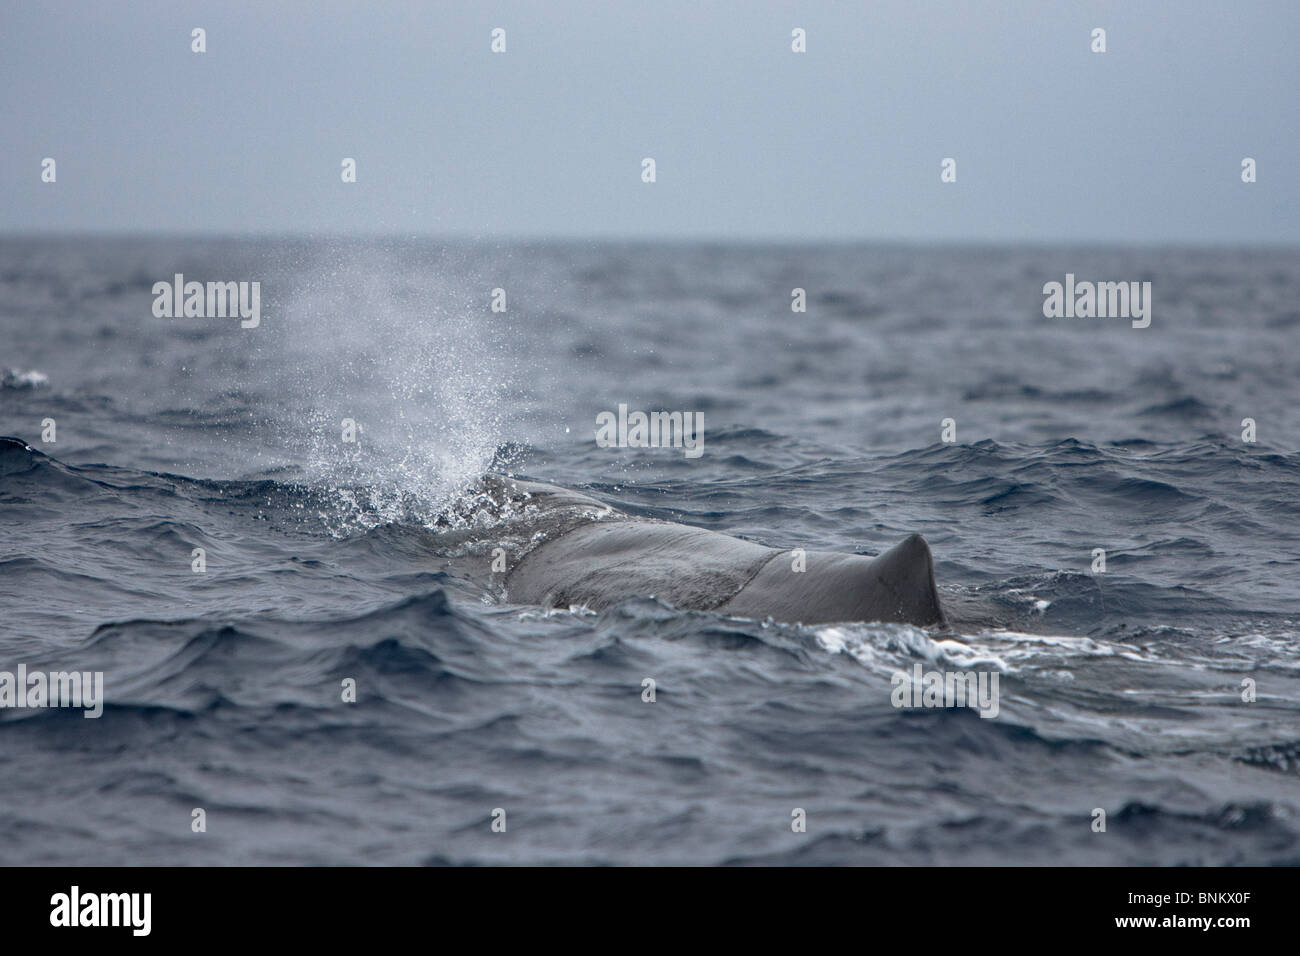 Sperm whale Cachalote Pottwal Physeter macrocephalus Pico Azores Portugal blowing - Stock Image